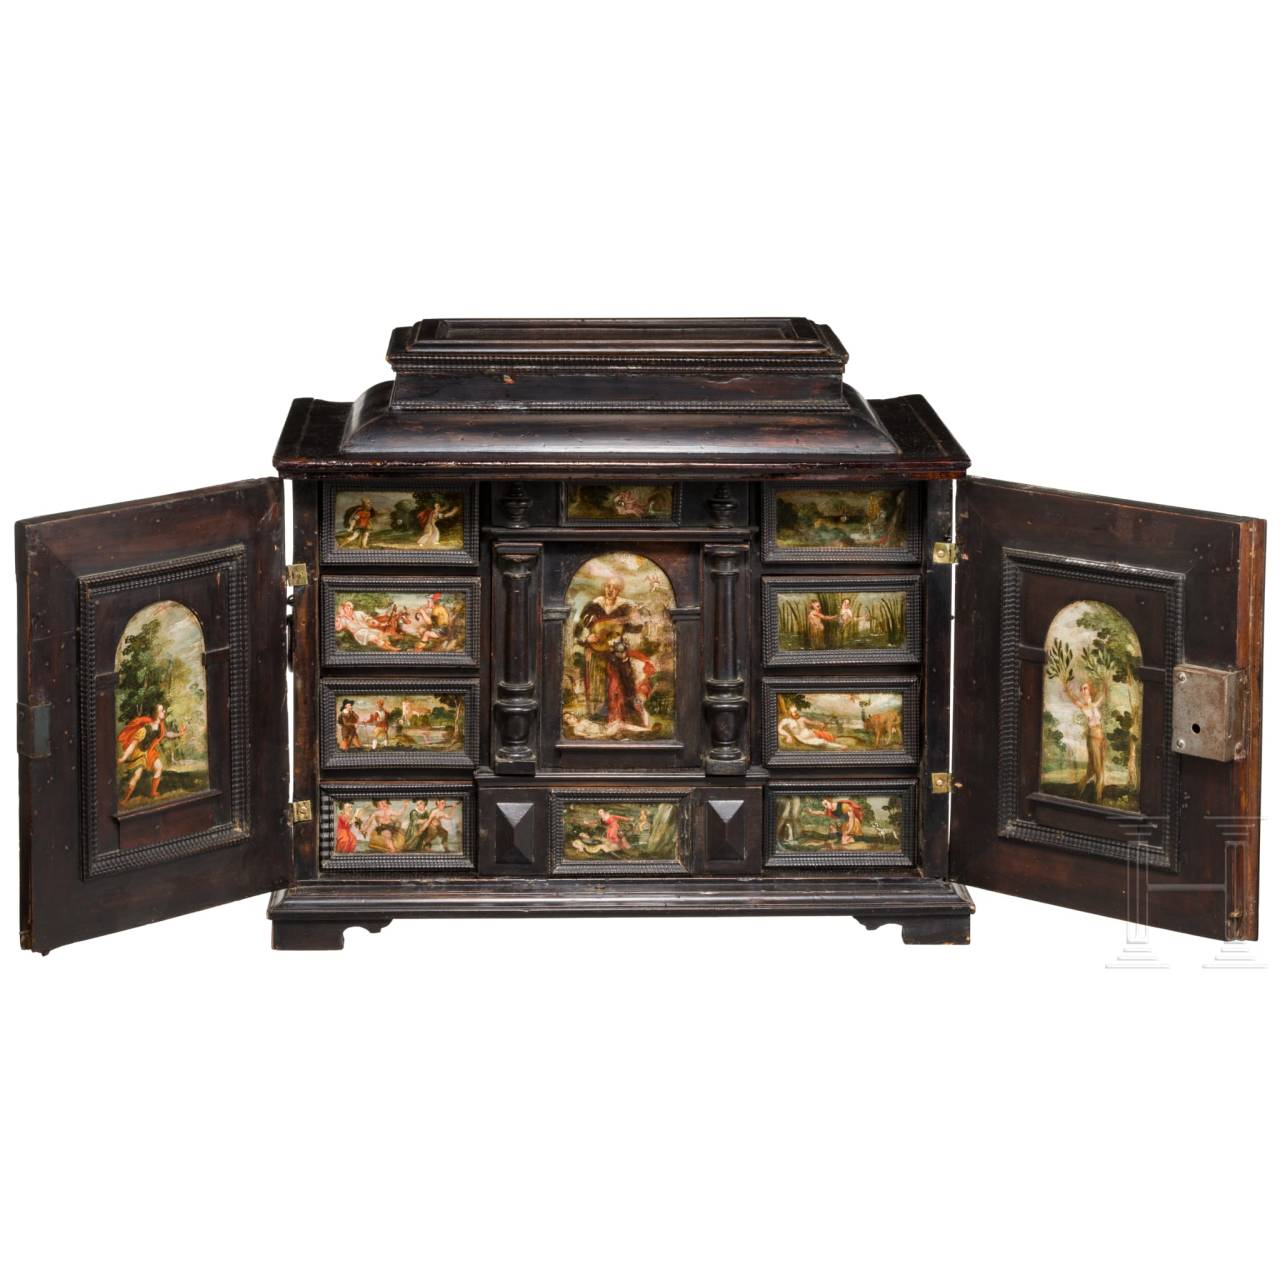 A Flemish Baroque cabinet casket with miniature paintings, 2nd half of the 17th century